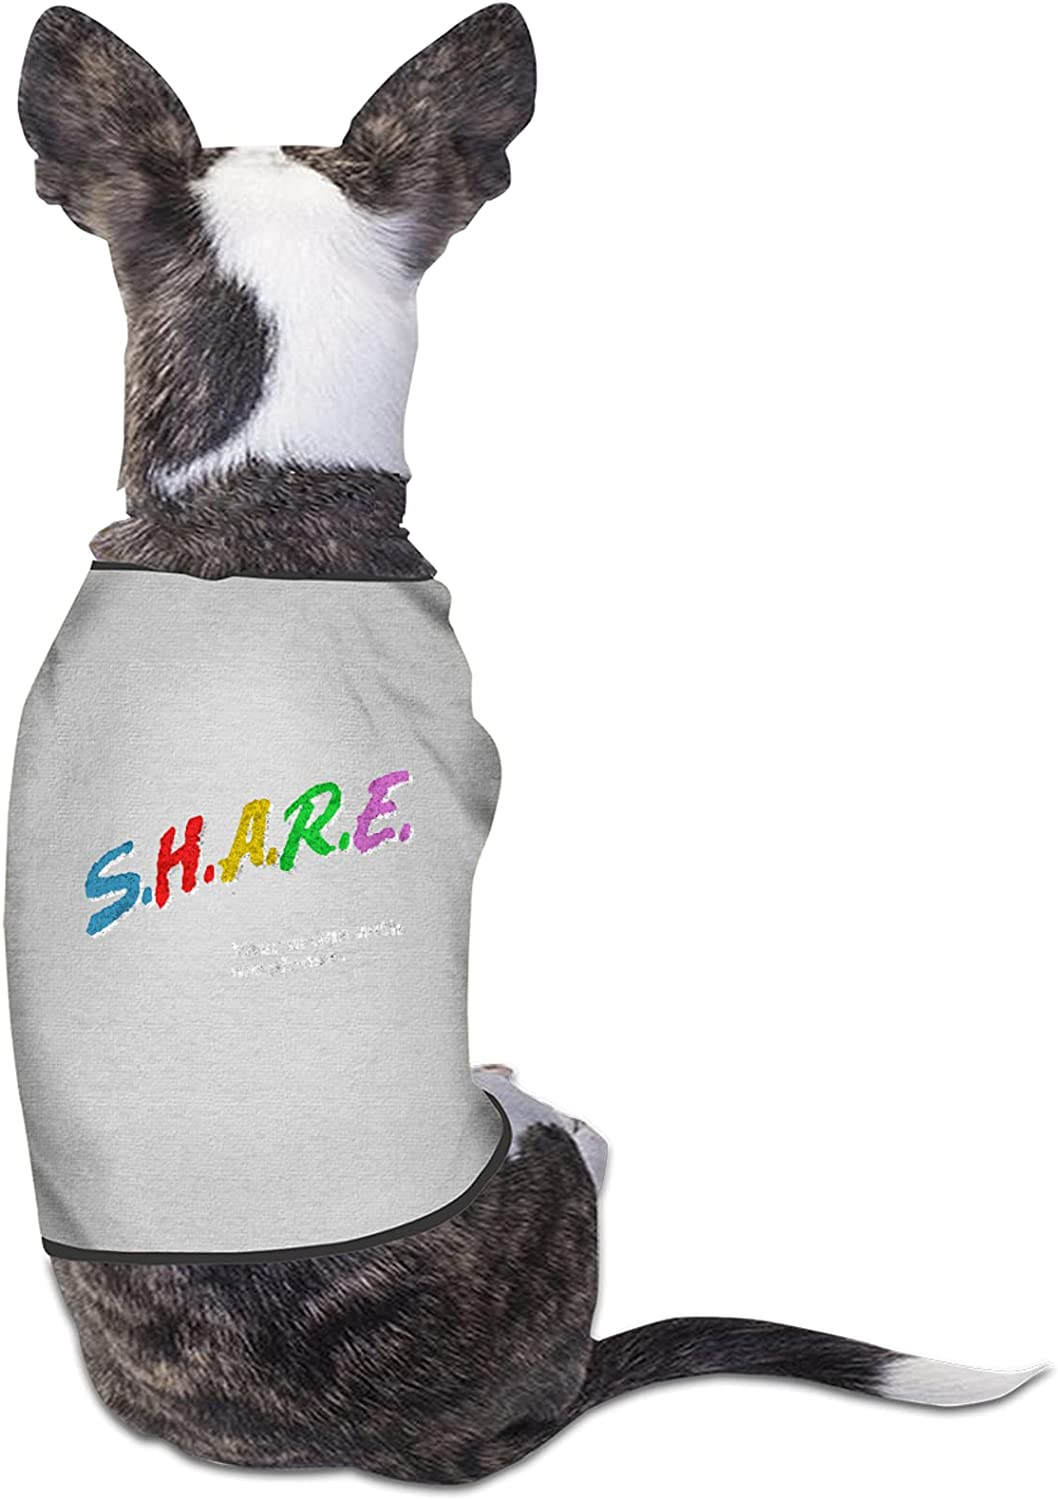 Dare Drugs are Really Expensive Pup Pajamas Shirt New popularity Dogs Dog Cute Columbus Mall